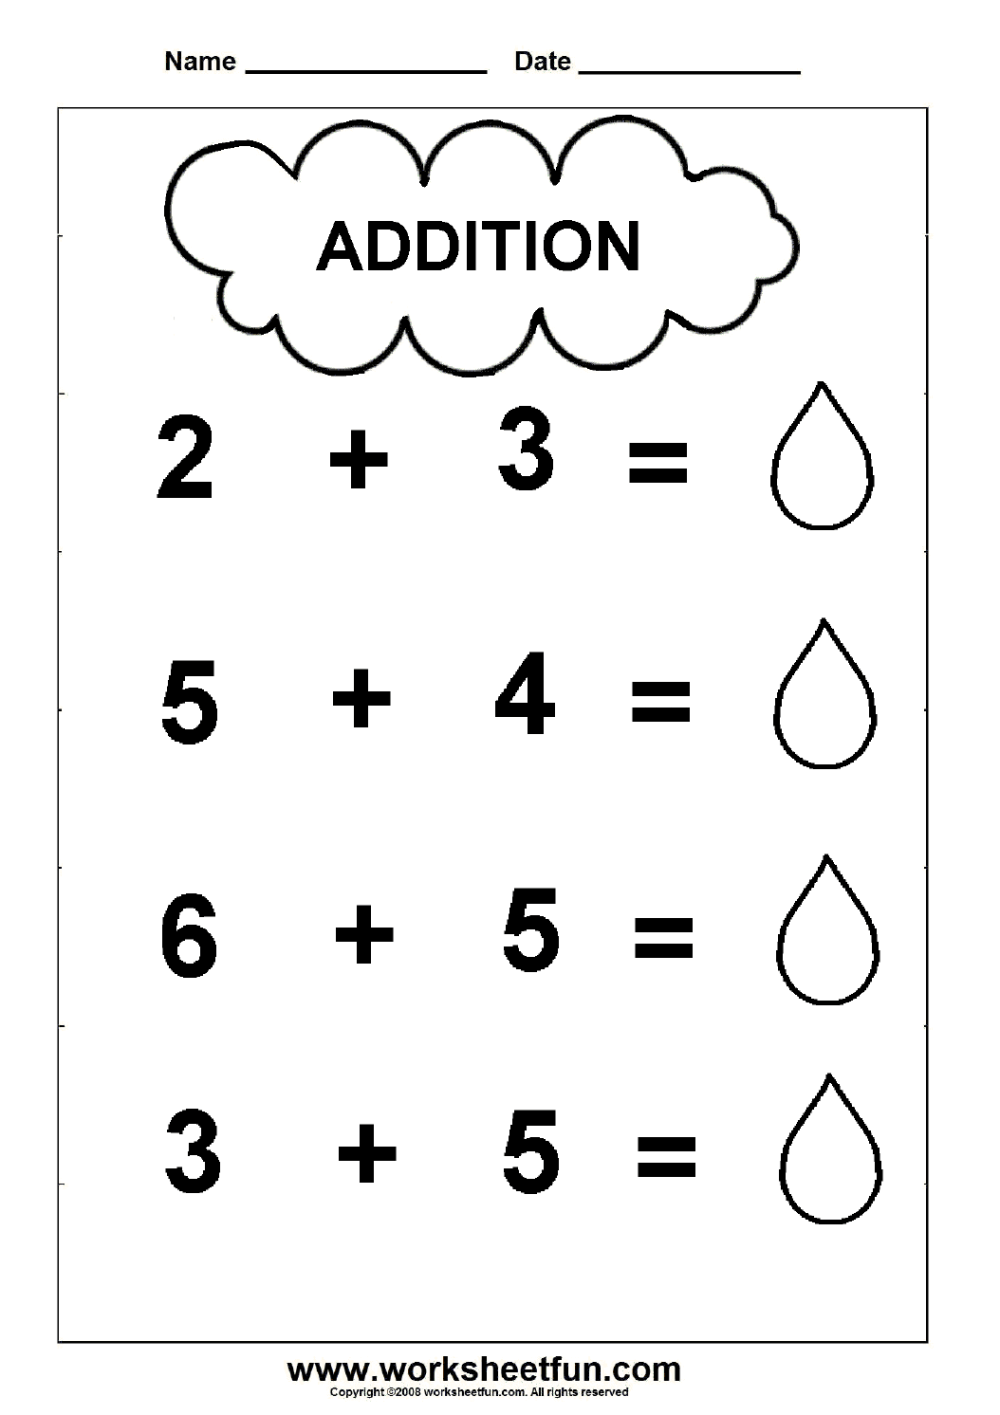 medium resolution of Addition Worksheet Kindergarten - Kindergarten